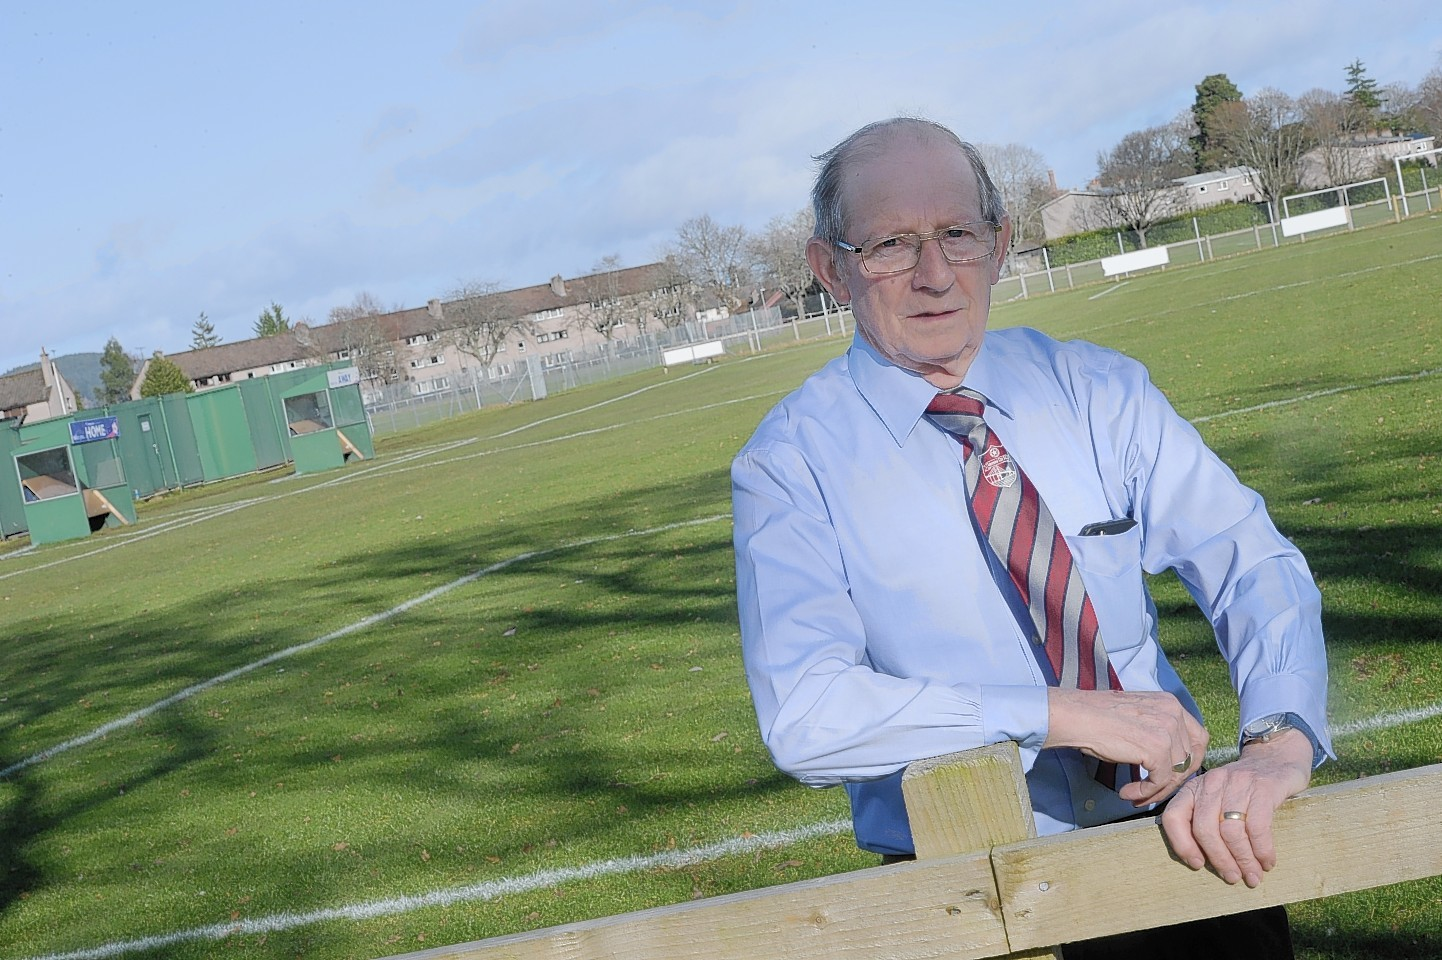 Alastair Wardhaugh, Chairman of Inverness City Football Club